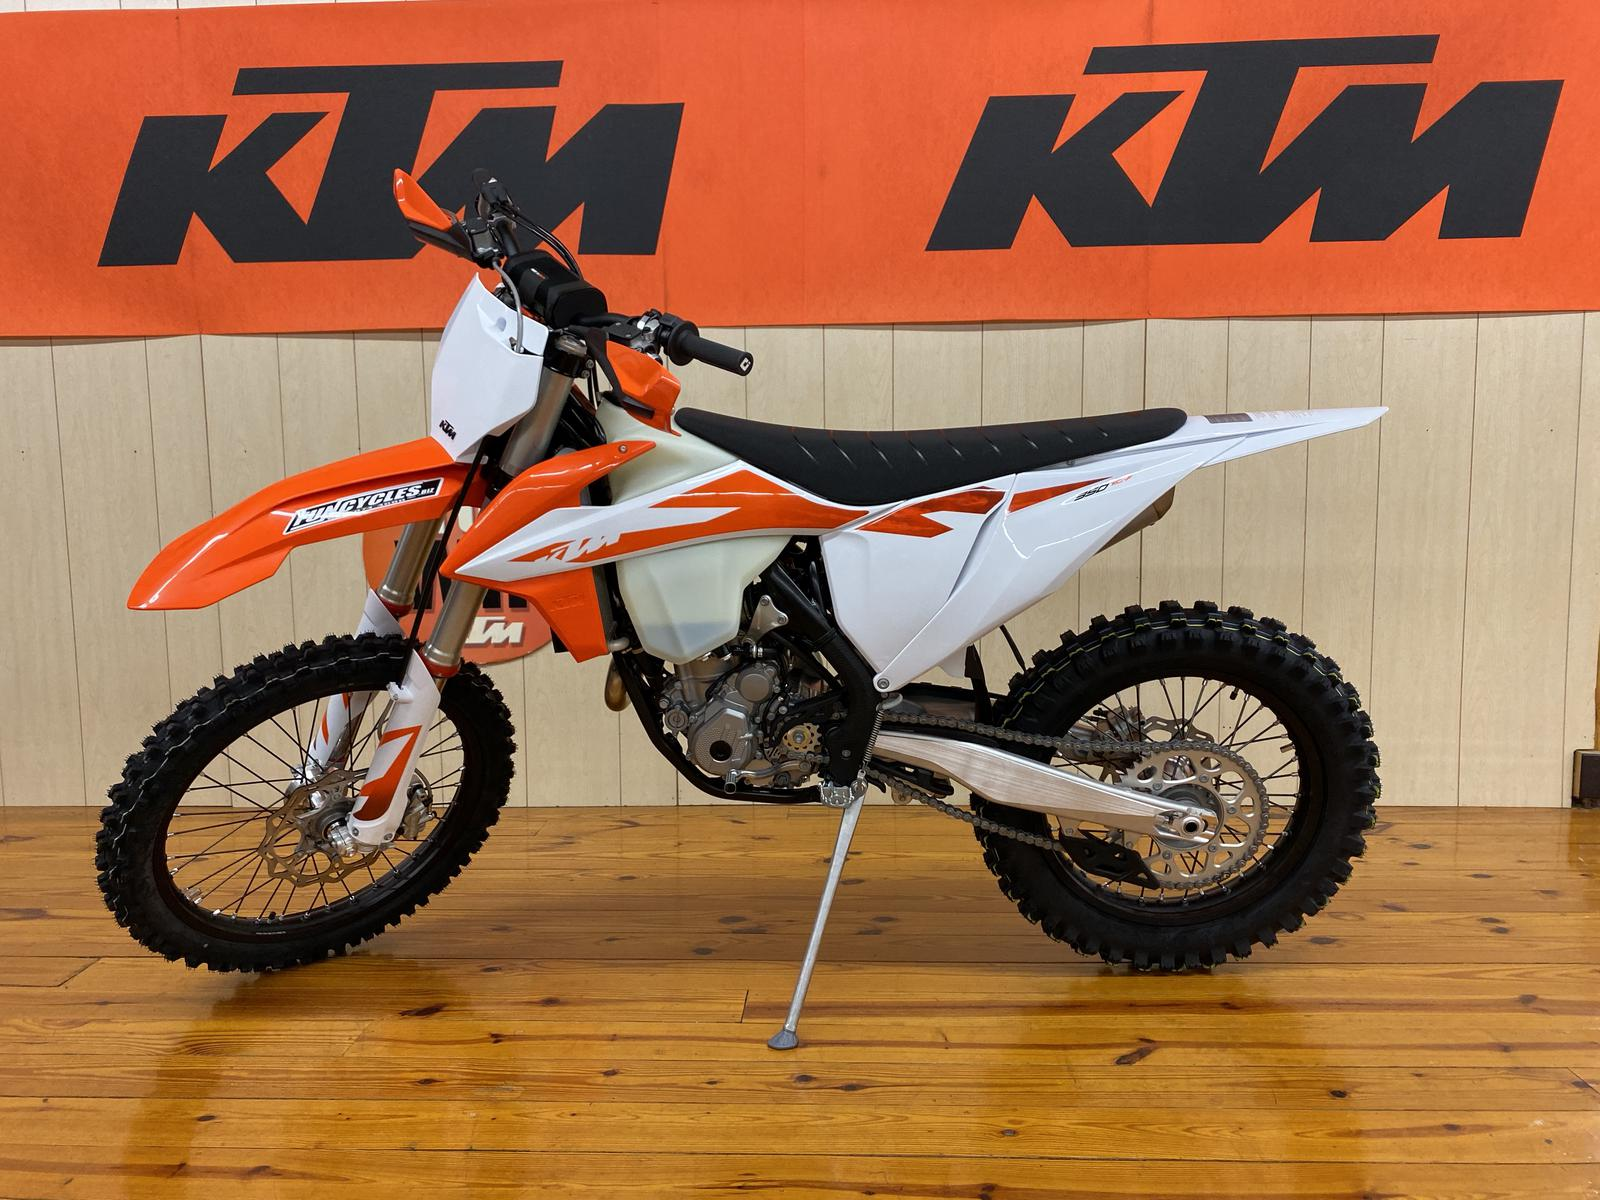 2020 Ktm 350 Xc F For Sale In Valdese Nc Fun Cycles Inc Valdese Nc 828 874 4680